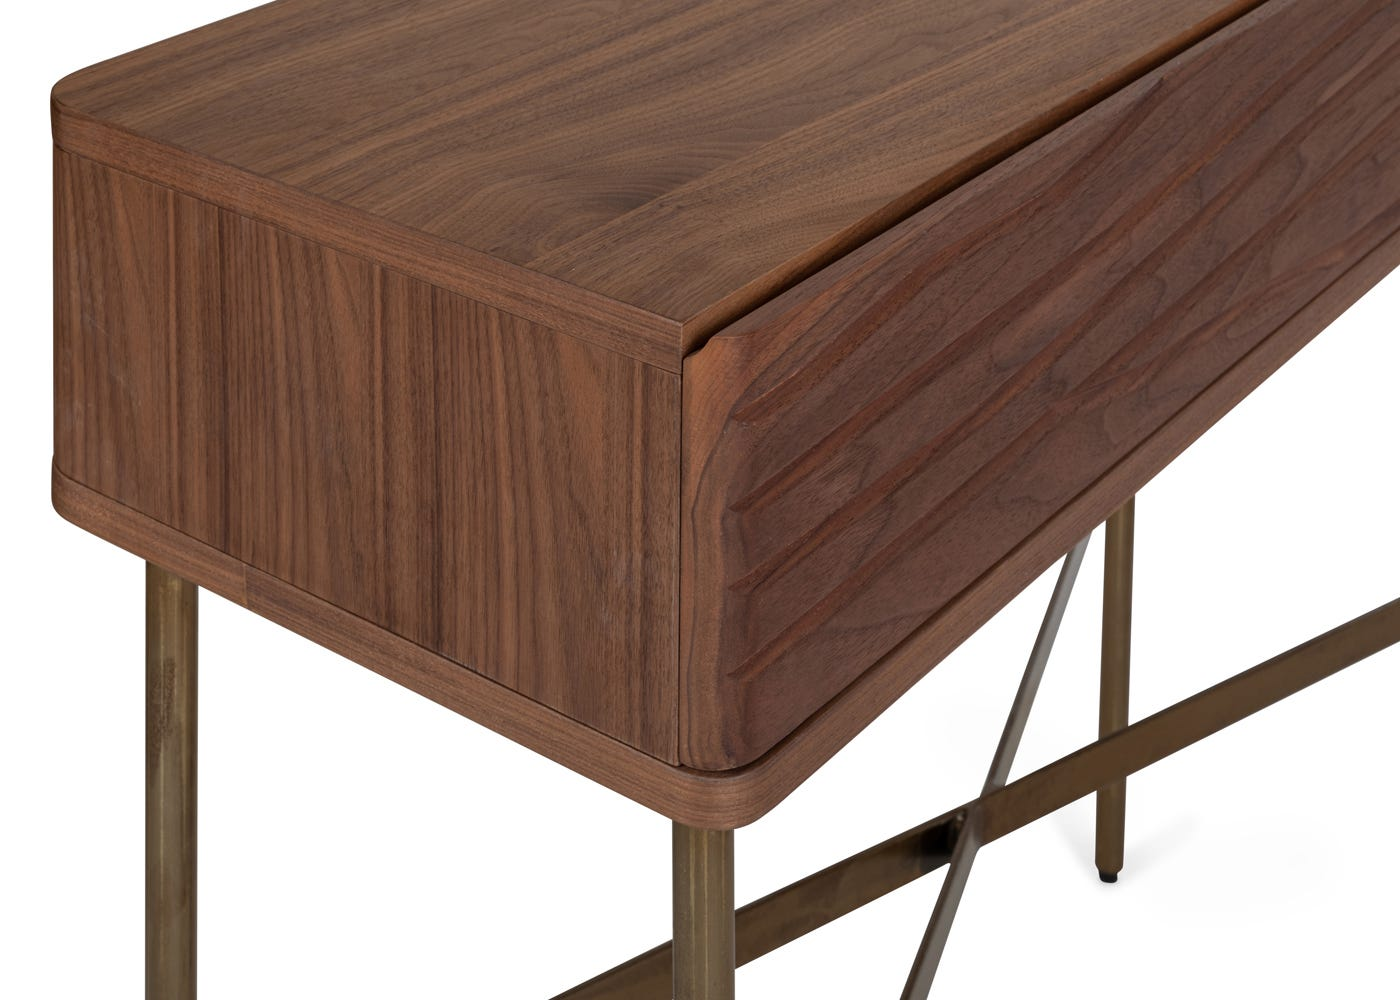 As shown: Walnut front.